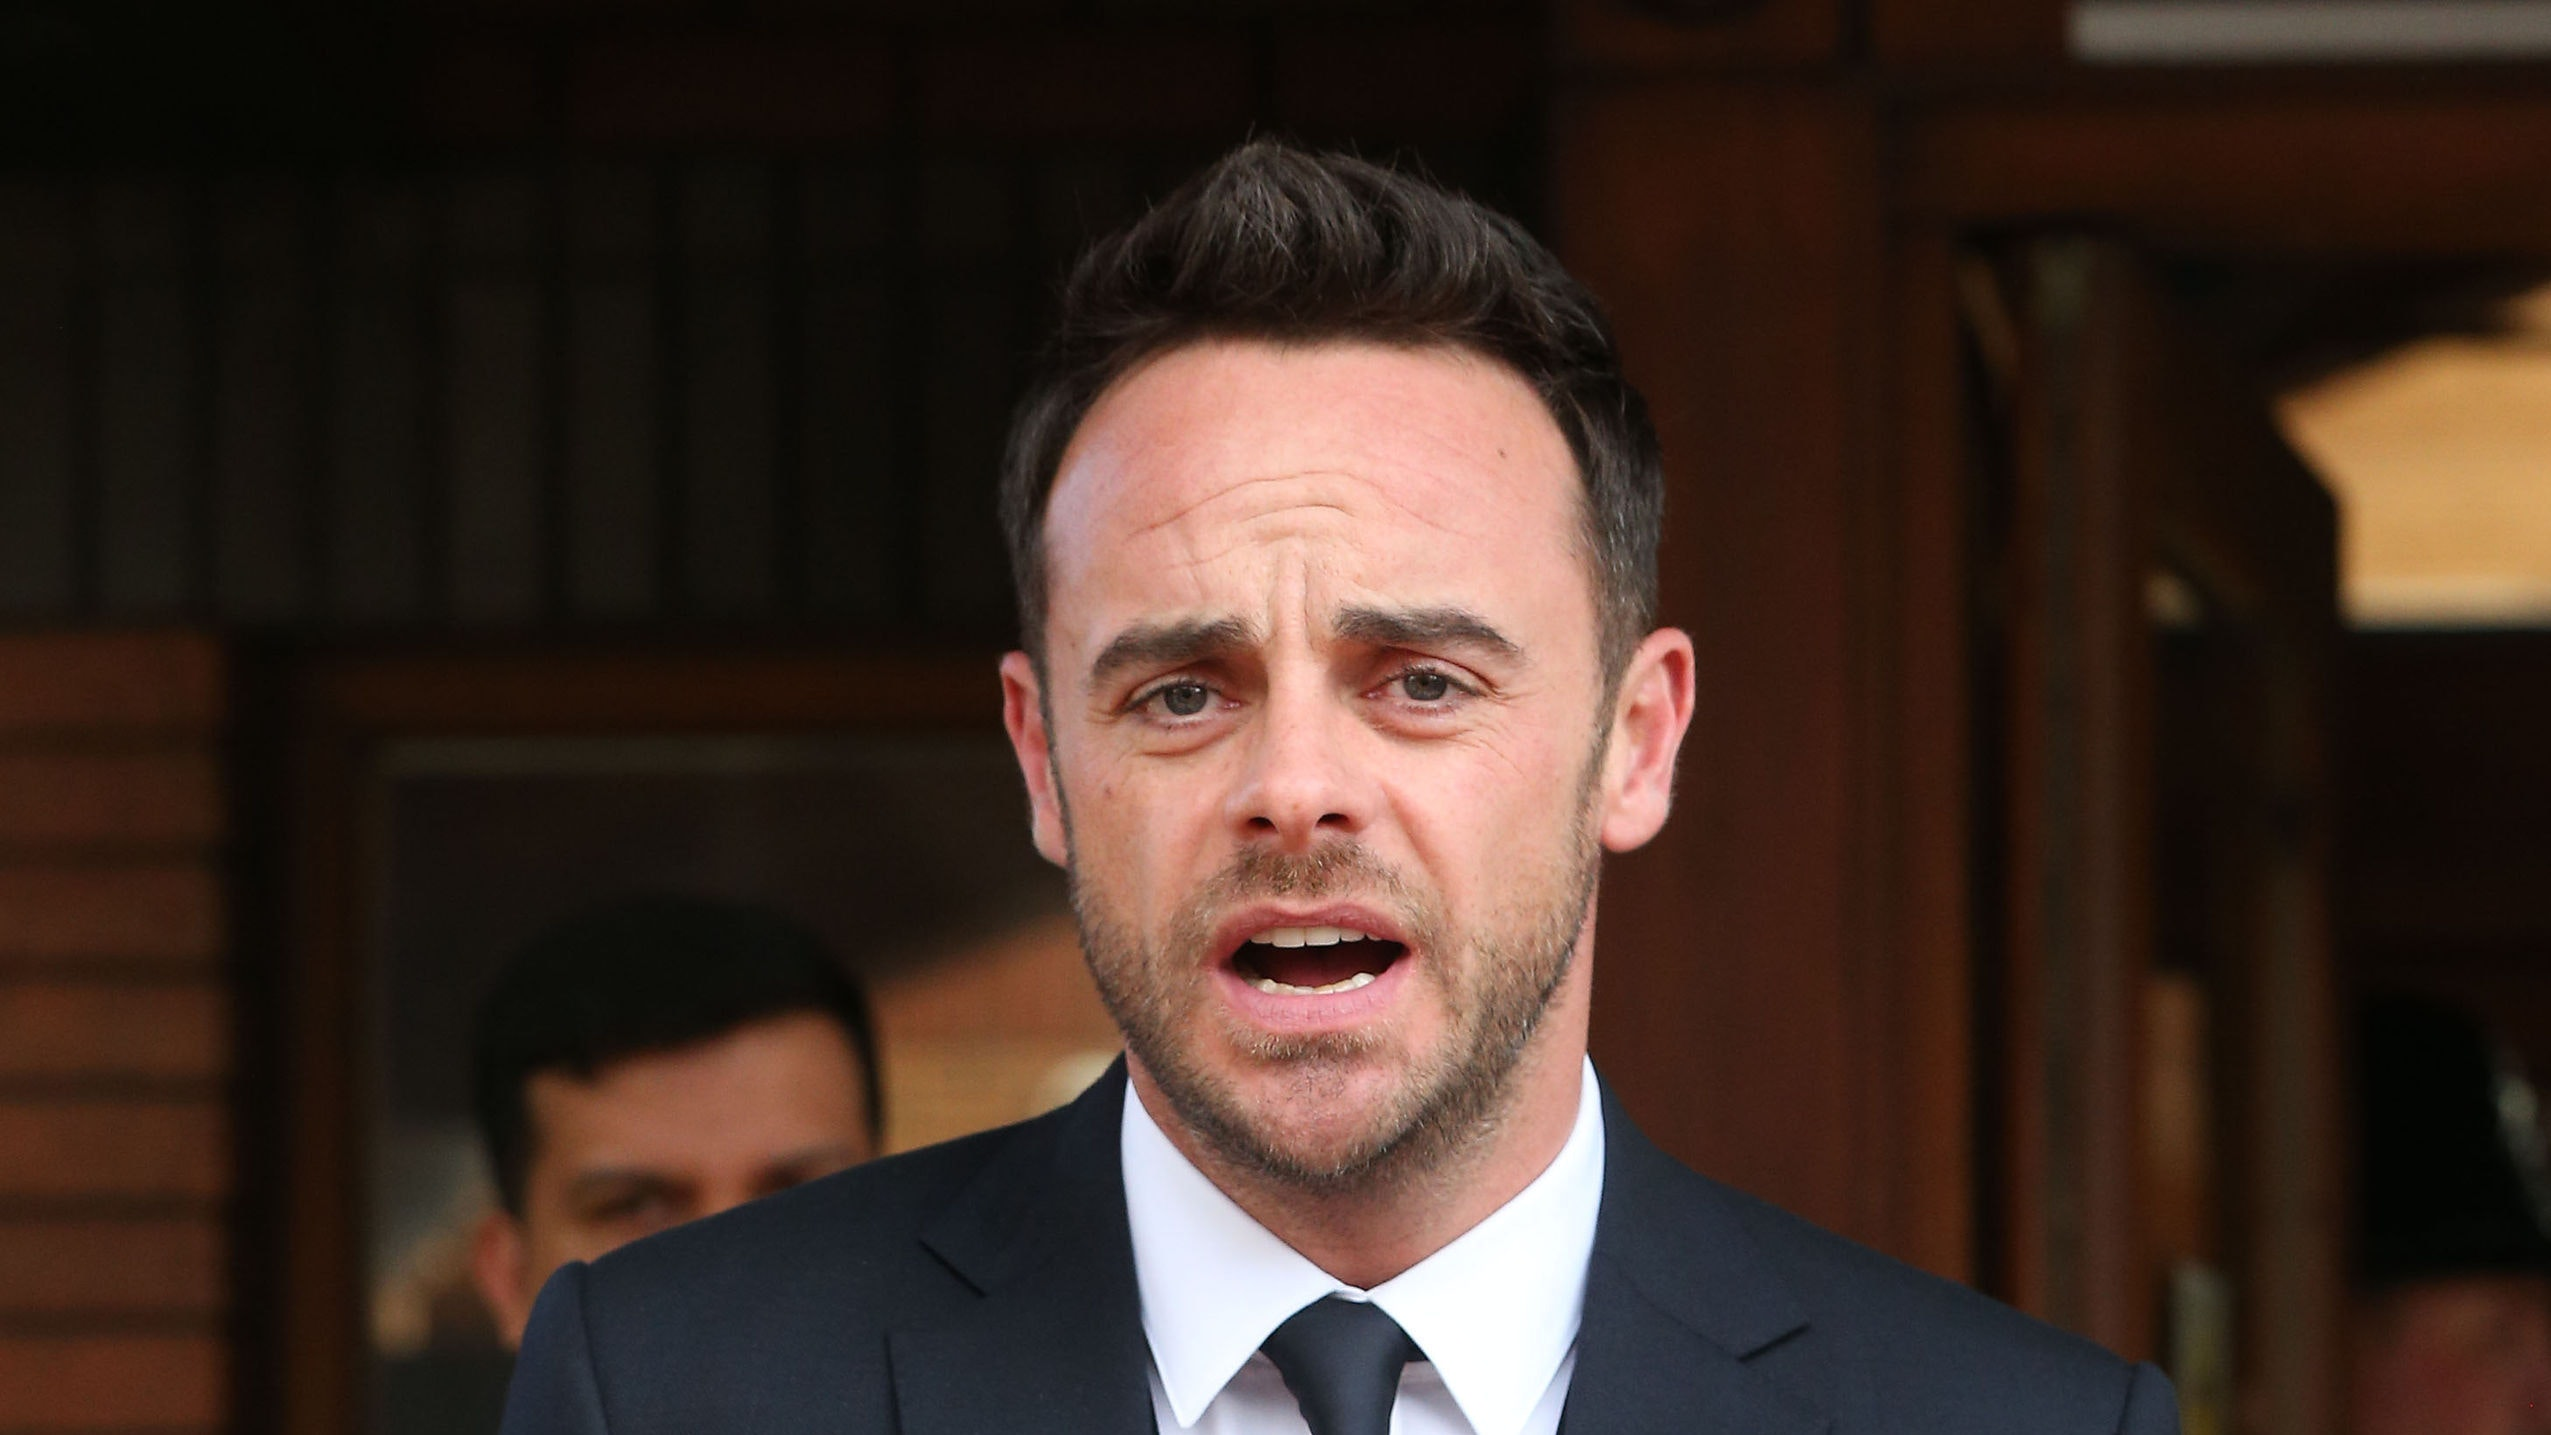 Ant McPartlin confirms return to work with Declan Donnely later this week